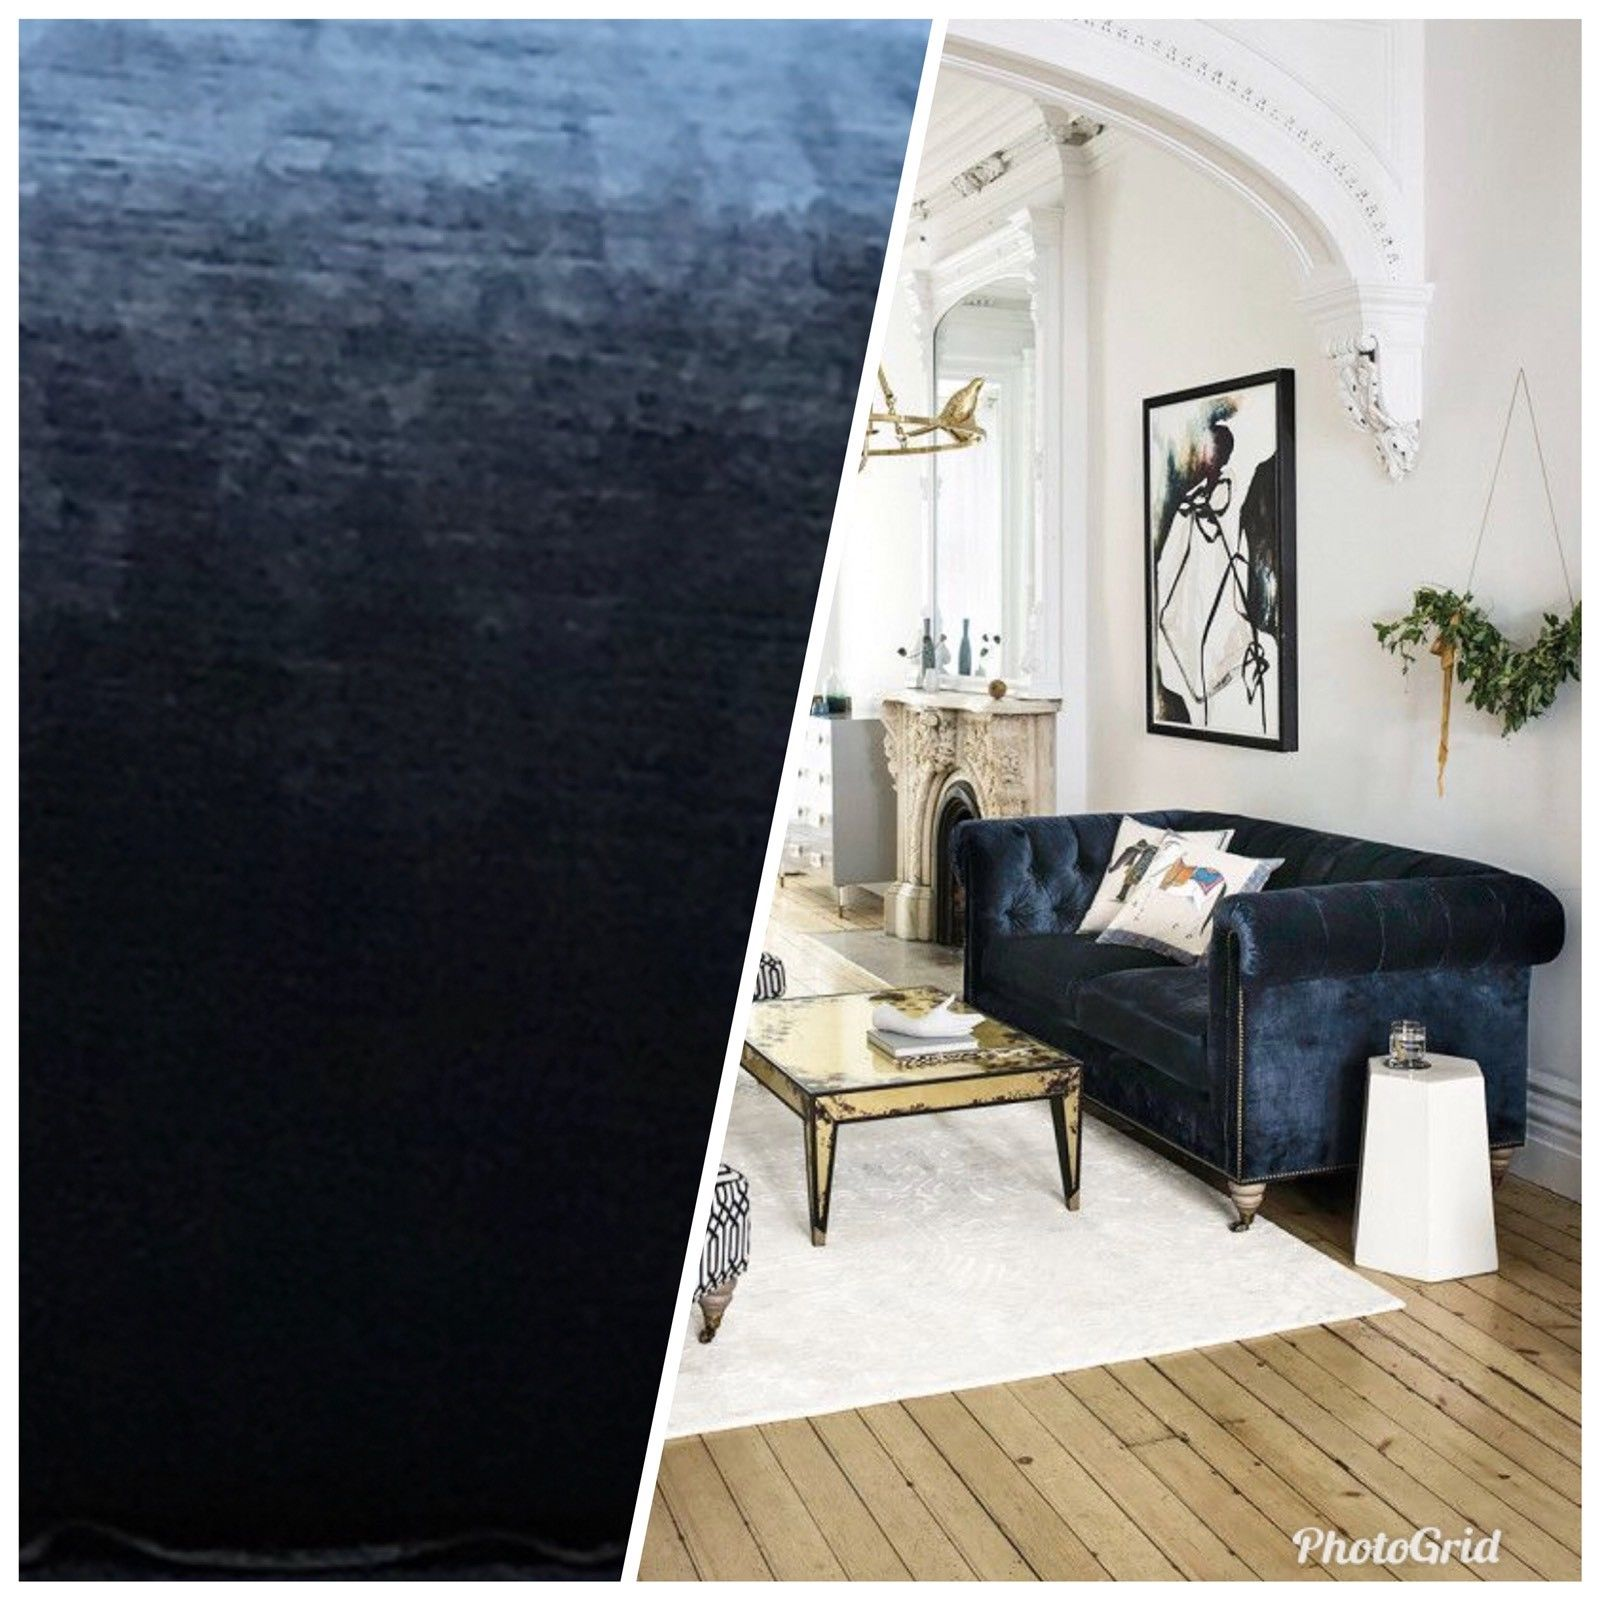 Designer Antique Inspired Velvet Fabric - Deep Sea Blue - Upholstery - Fancy Styles Fabric Pierre Frey Lee Jofa